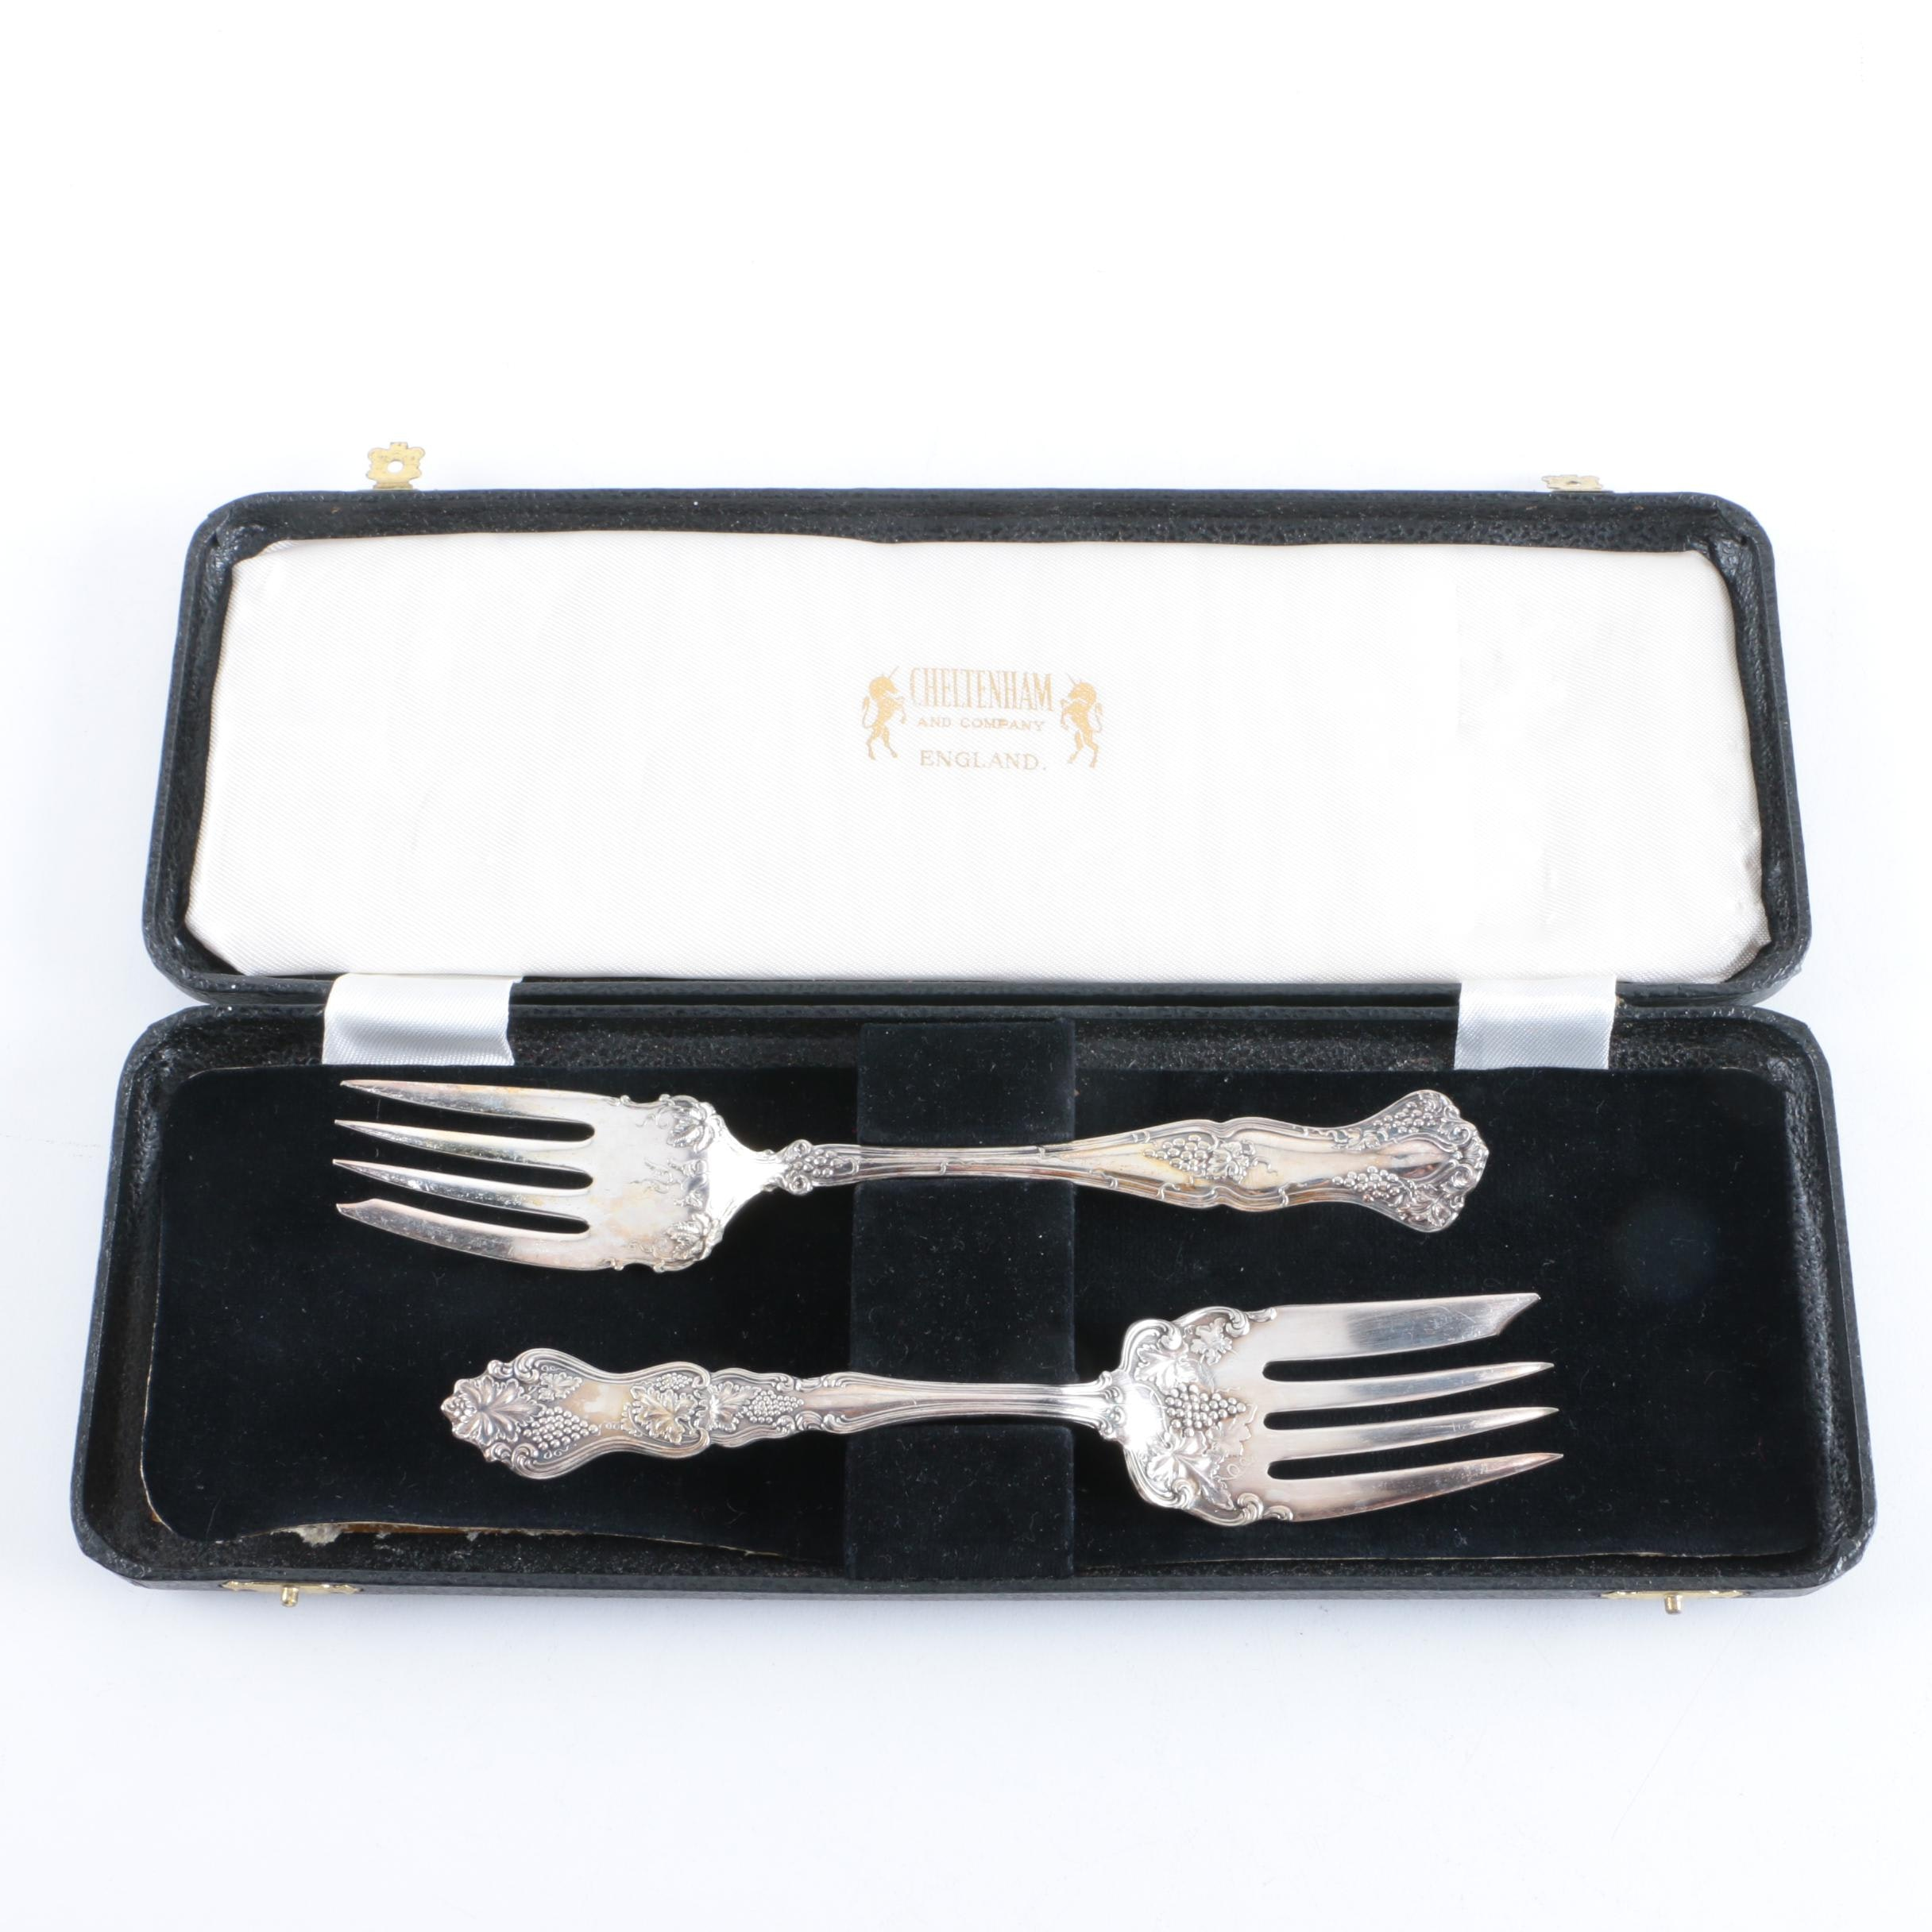 American Silver Co. Silver Plate Salad Forks